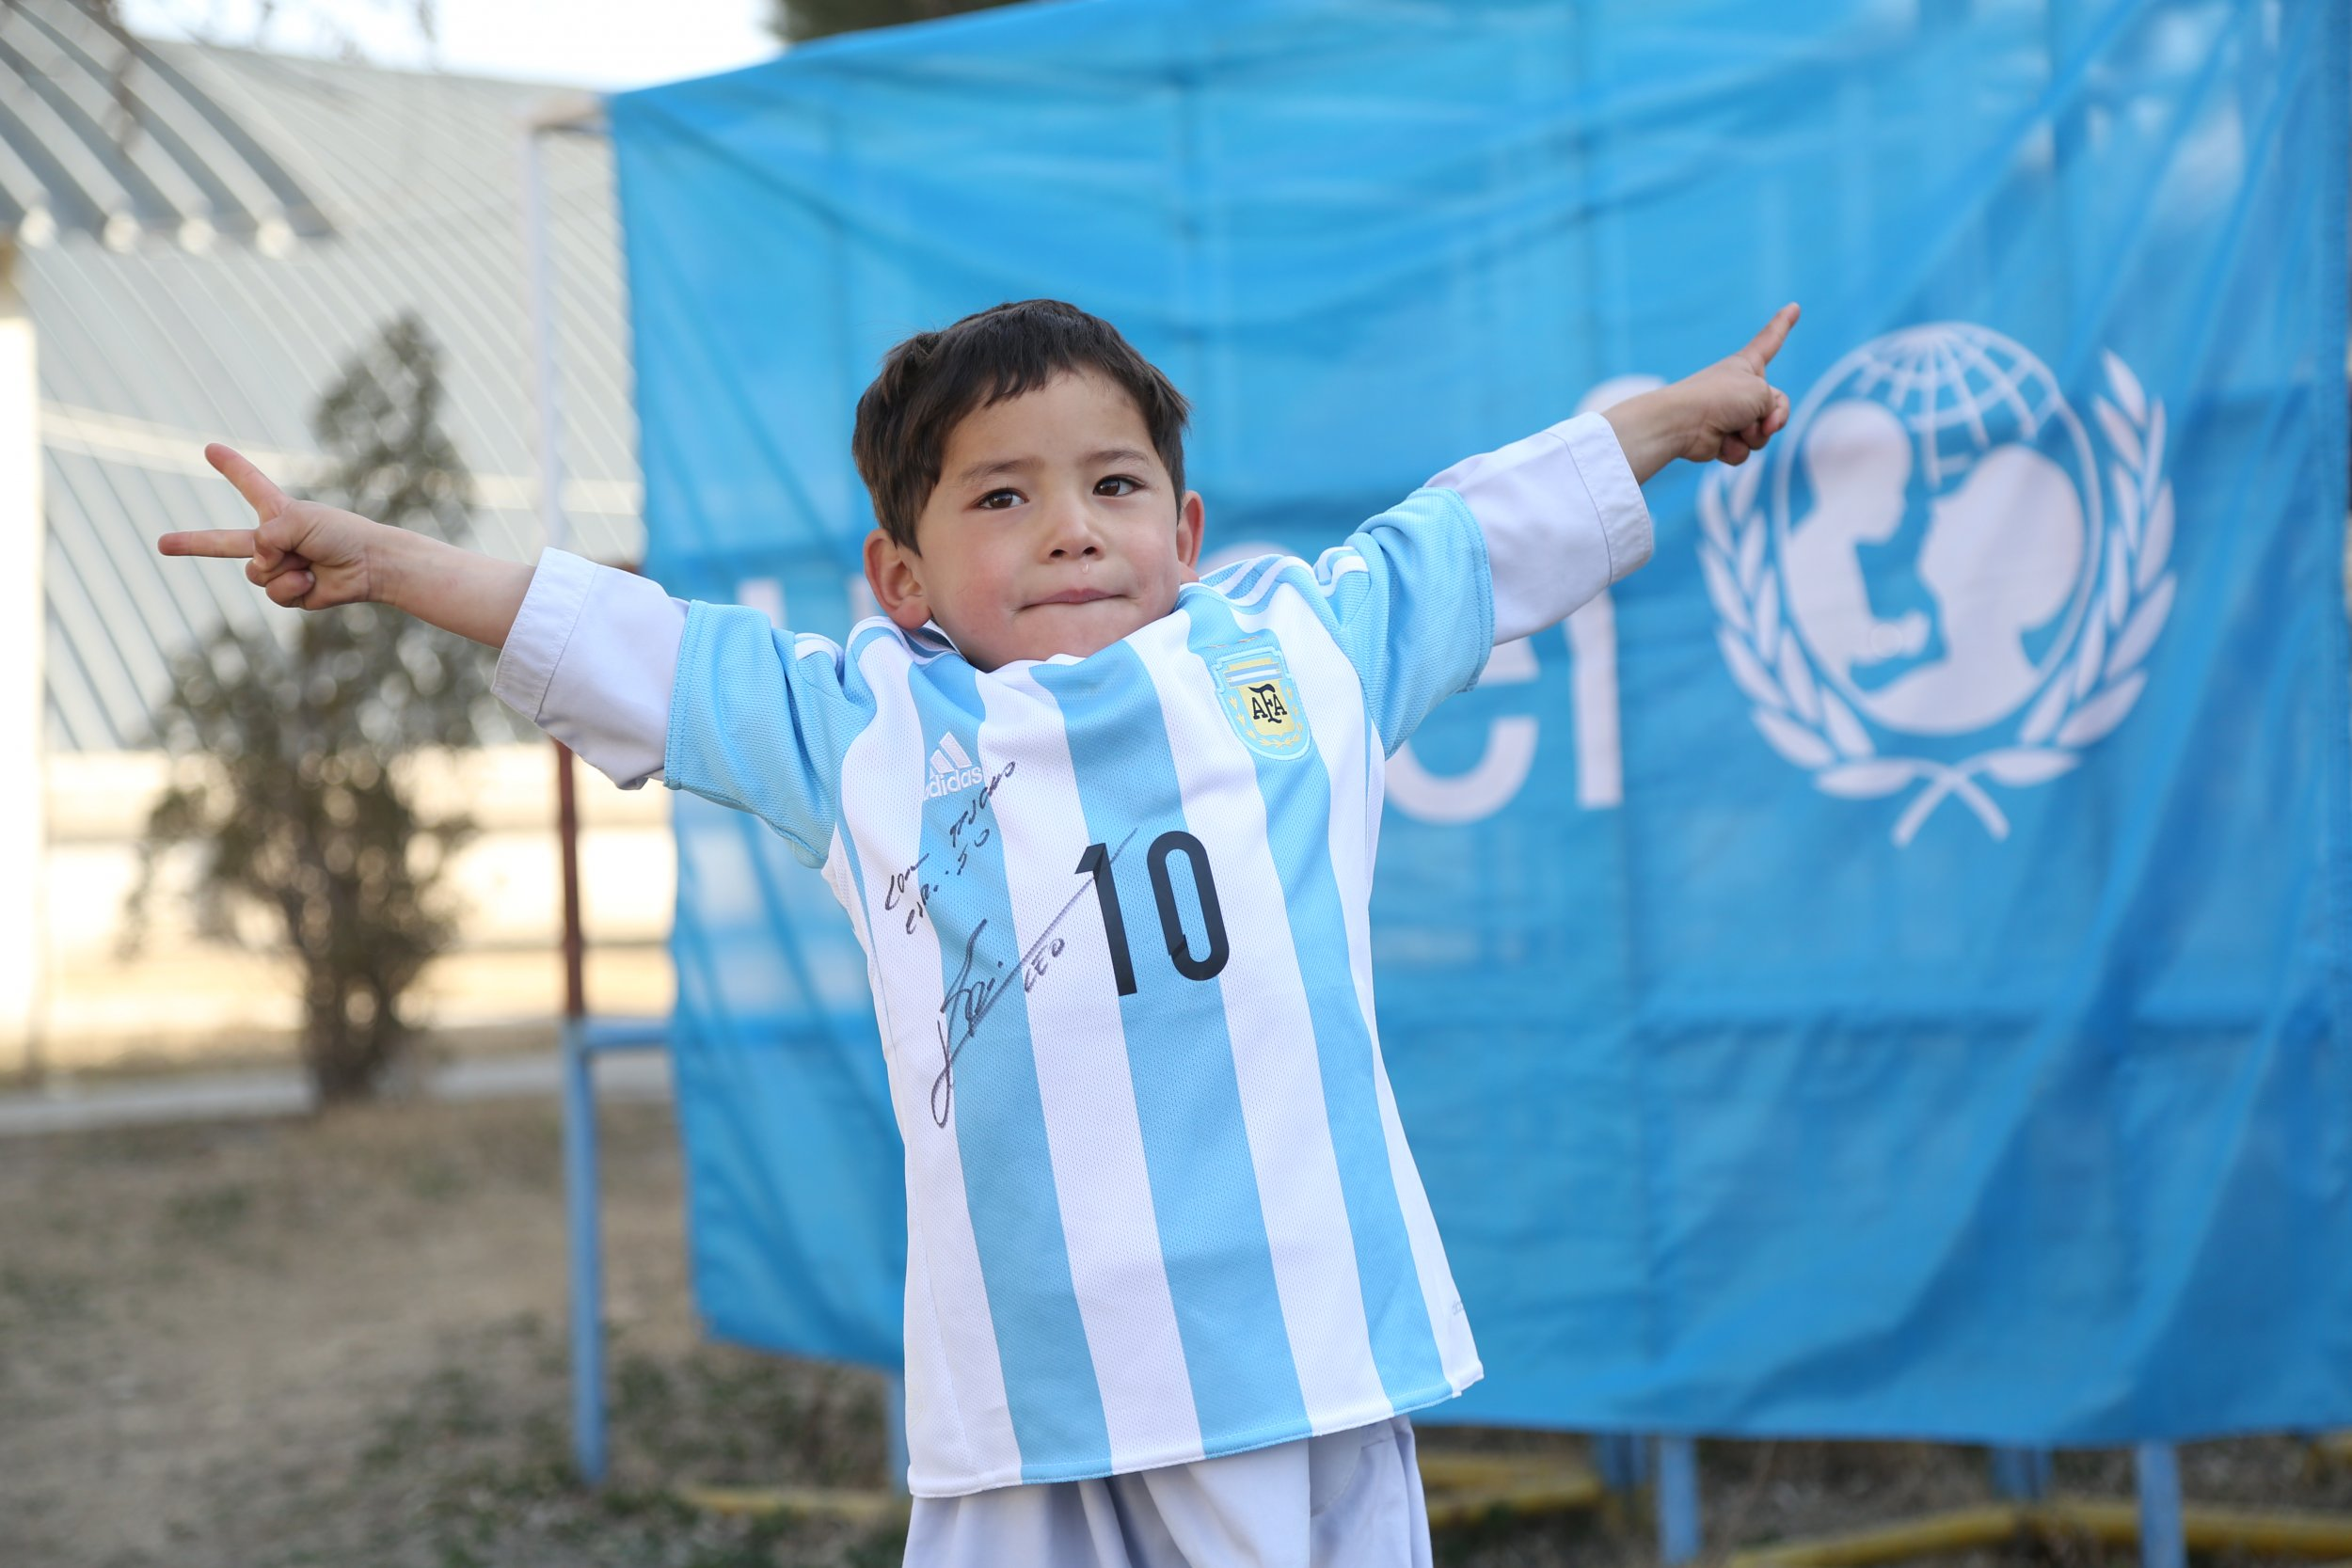 messi shirt afghan boy_0225